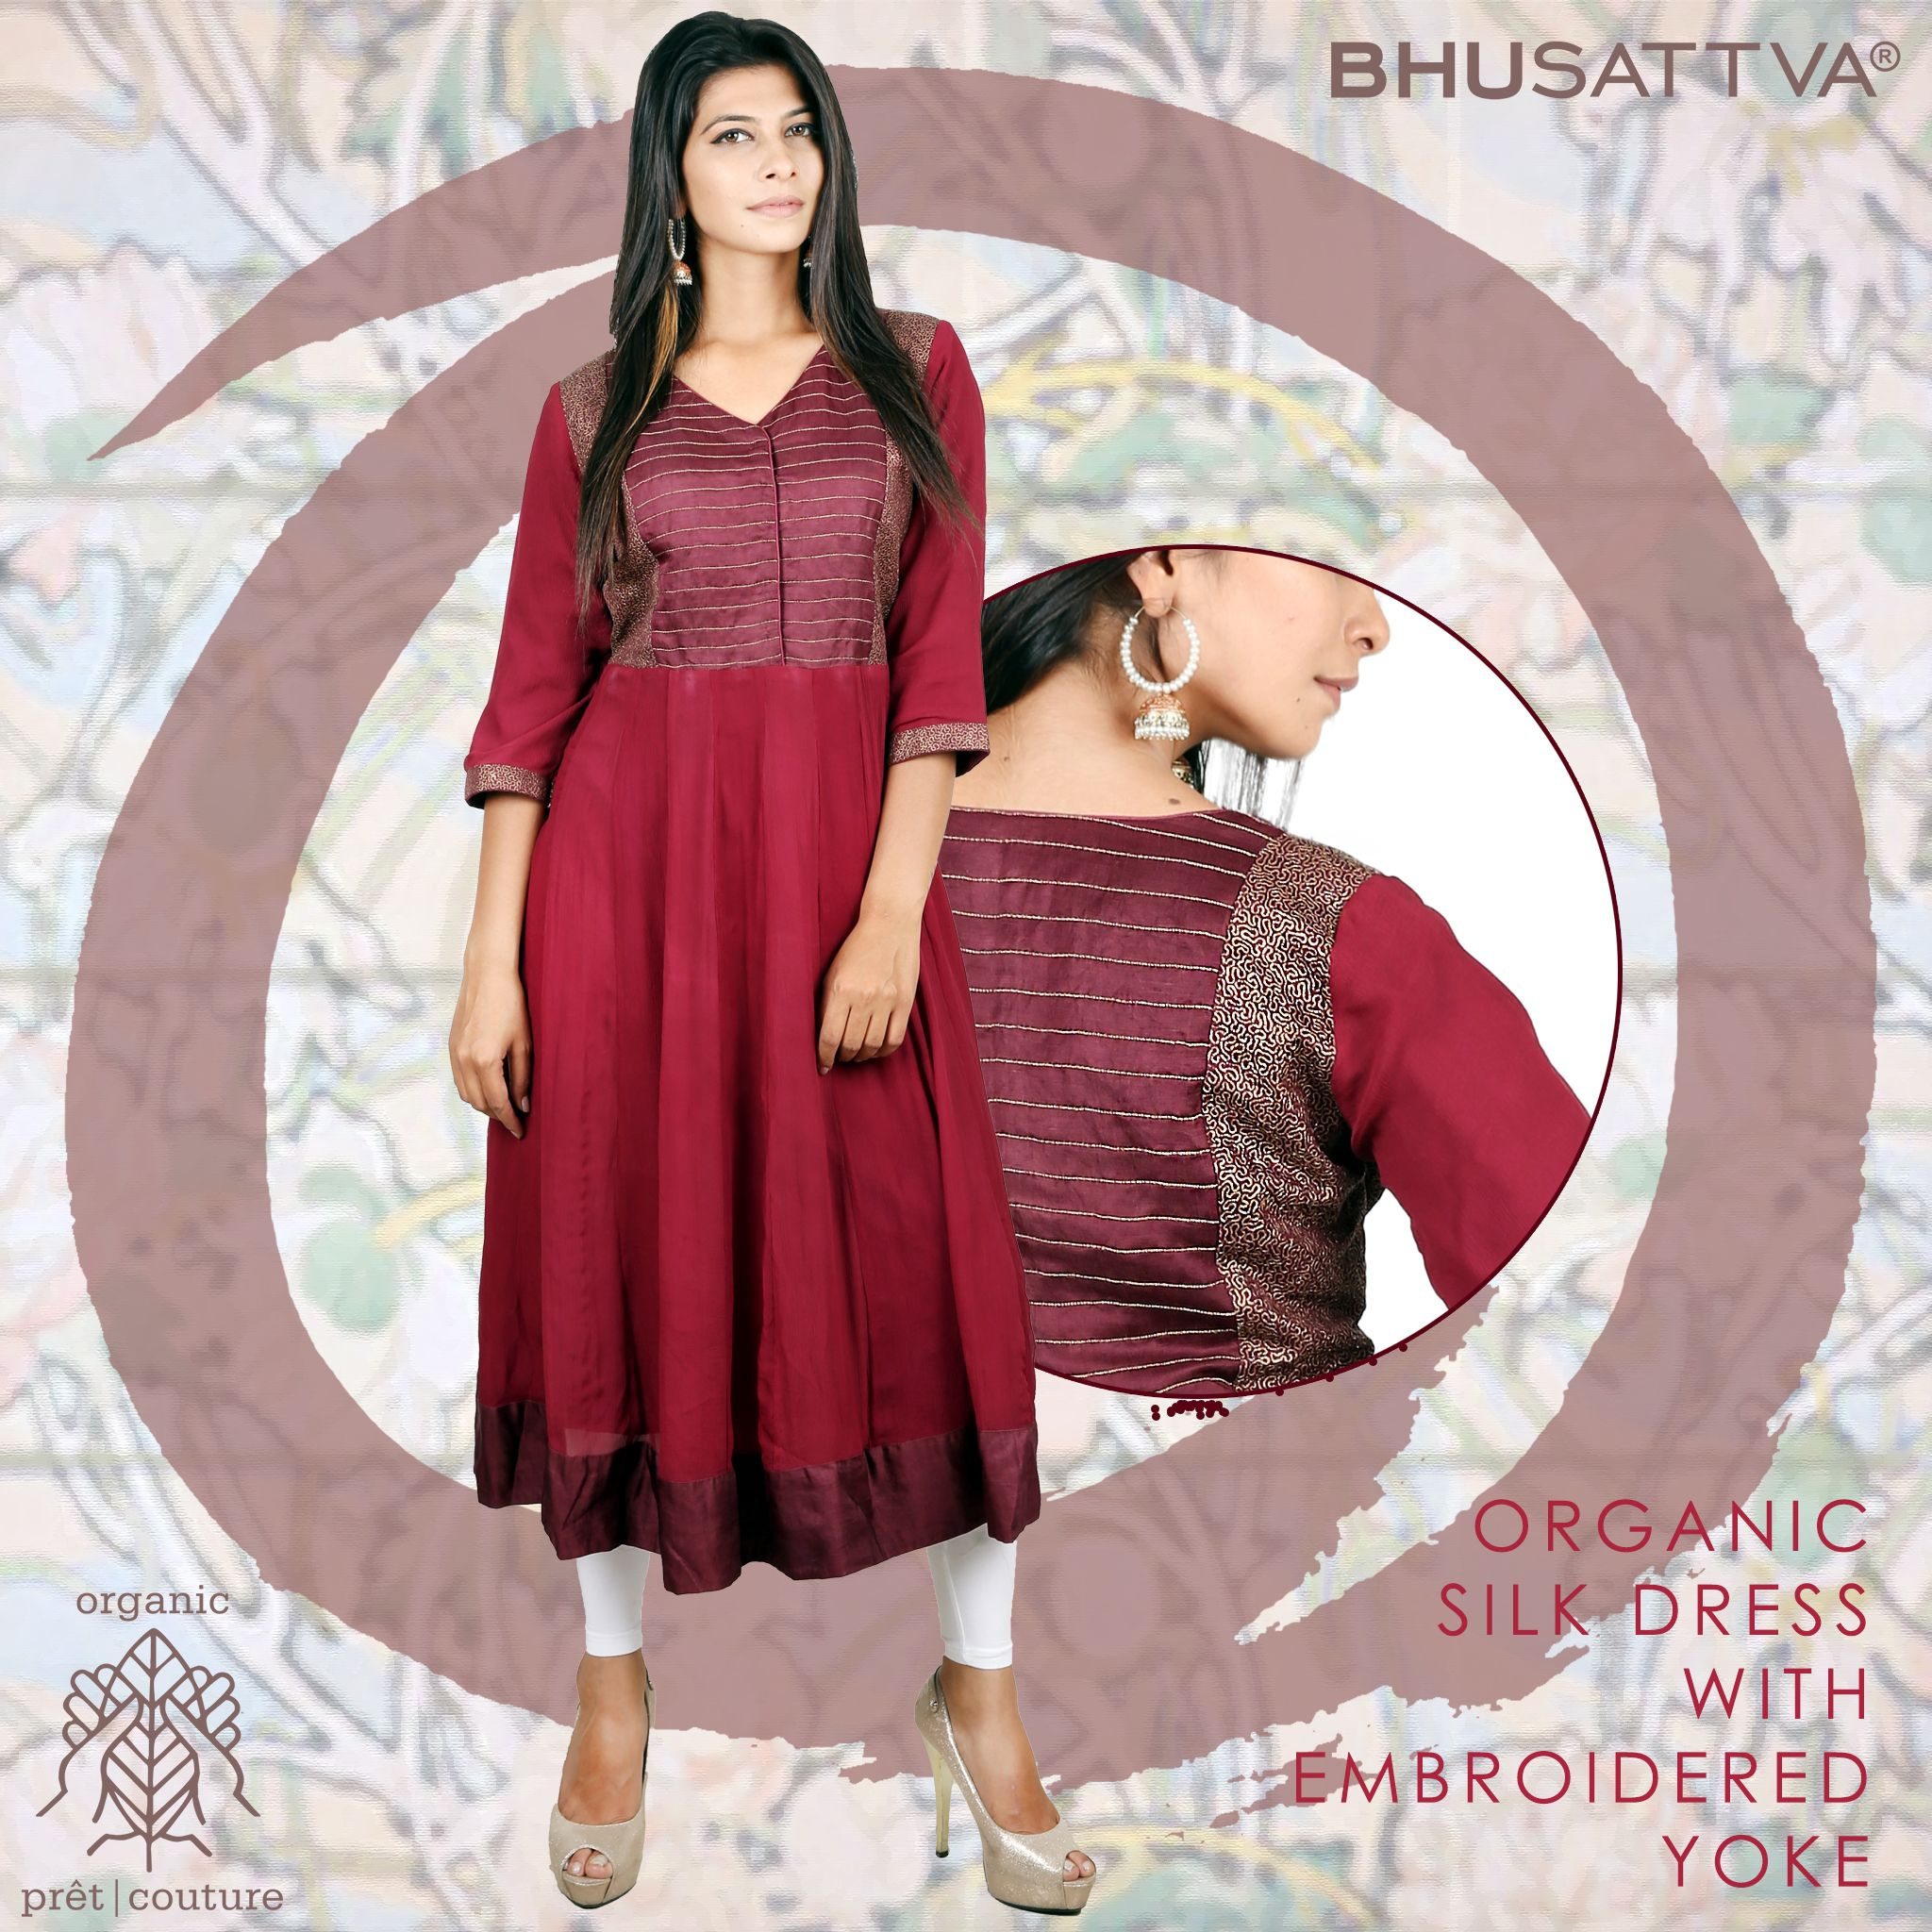 Real organic silk is a material that most closely resembles human skin.. Experience skin friendly fabrics with Bhu:Sattva.  #Bhusattva #Organic #Pret #Couture #Dress #Silk #AhimsaSilk #HandEmbroidered #SkinFriendly #BreatheEasy #ReflectOrganic #RevealYourself #iWearBhusattva #BelieveWhatYouWear #TrustNature #MysticalNature #CloseToNature #OrganicIdeology #OrganicCollection #NaturalDyes #EcoFashion #OrganicFashion #SustainableFashion #GoOrganic #WearOrganic #DesignerLabel #DesignerWear